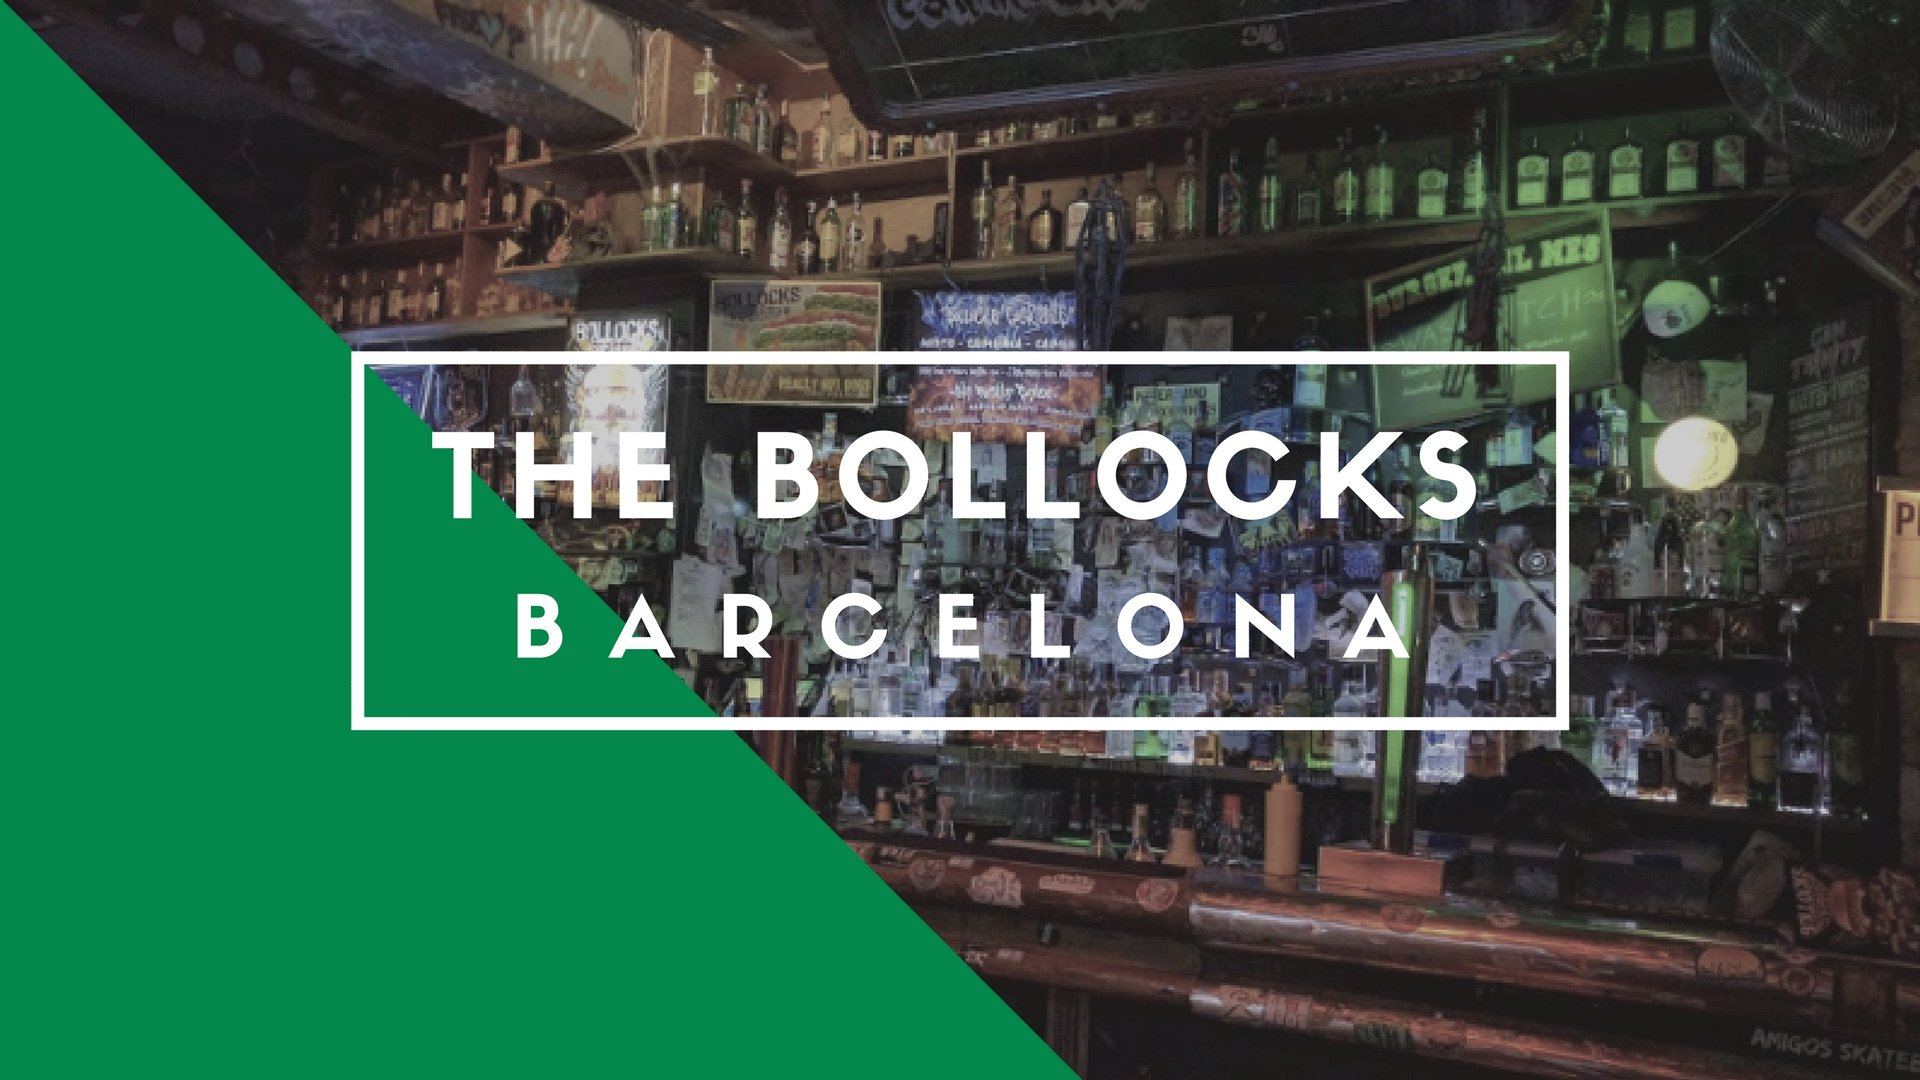 The Bollocks, Barcelona